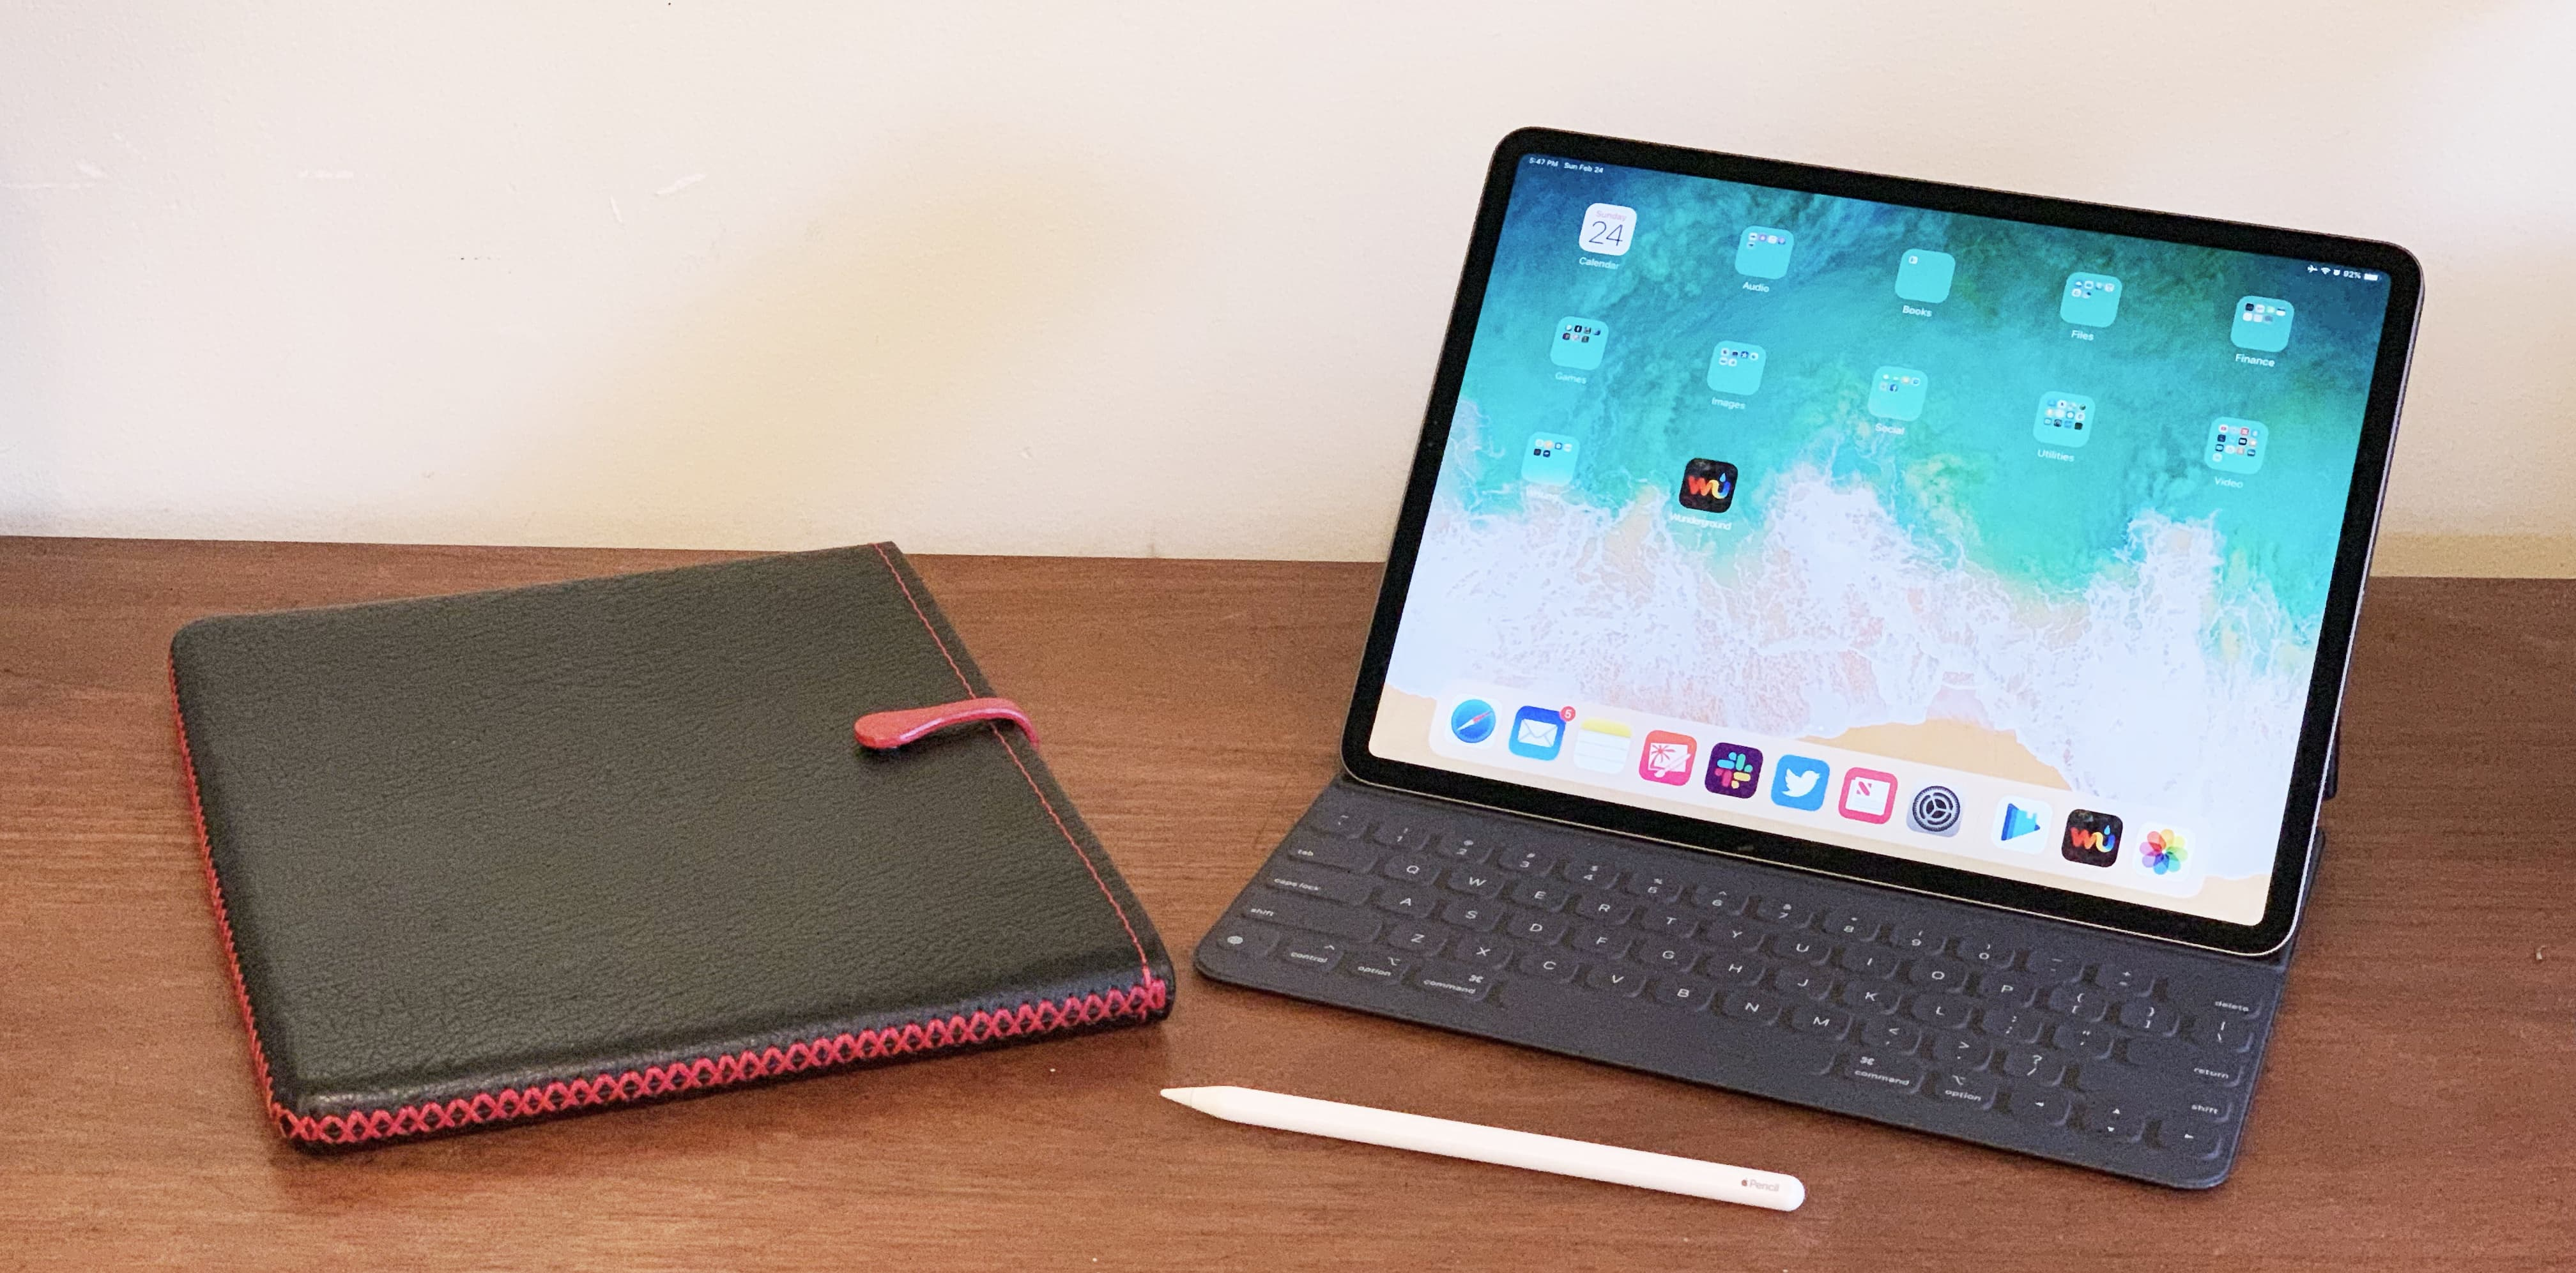 Protect your iPad Pro in style with a leather sleeve from Picaso Lab.